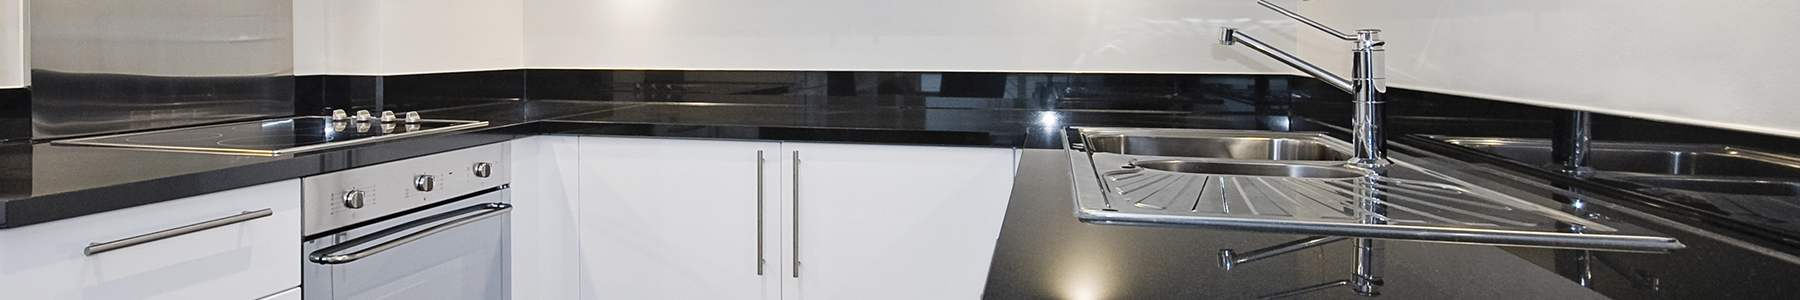 Granite Special Offers